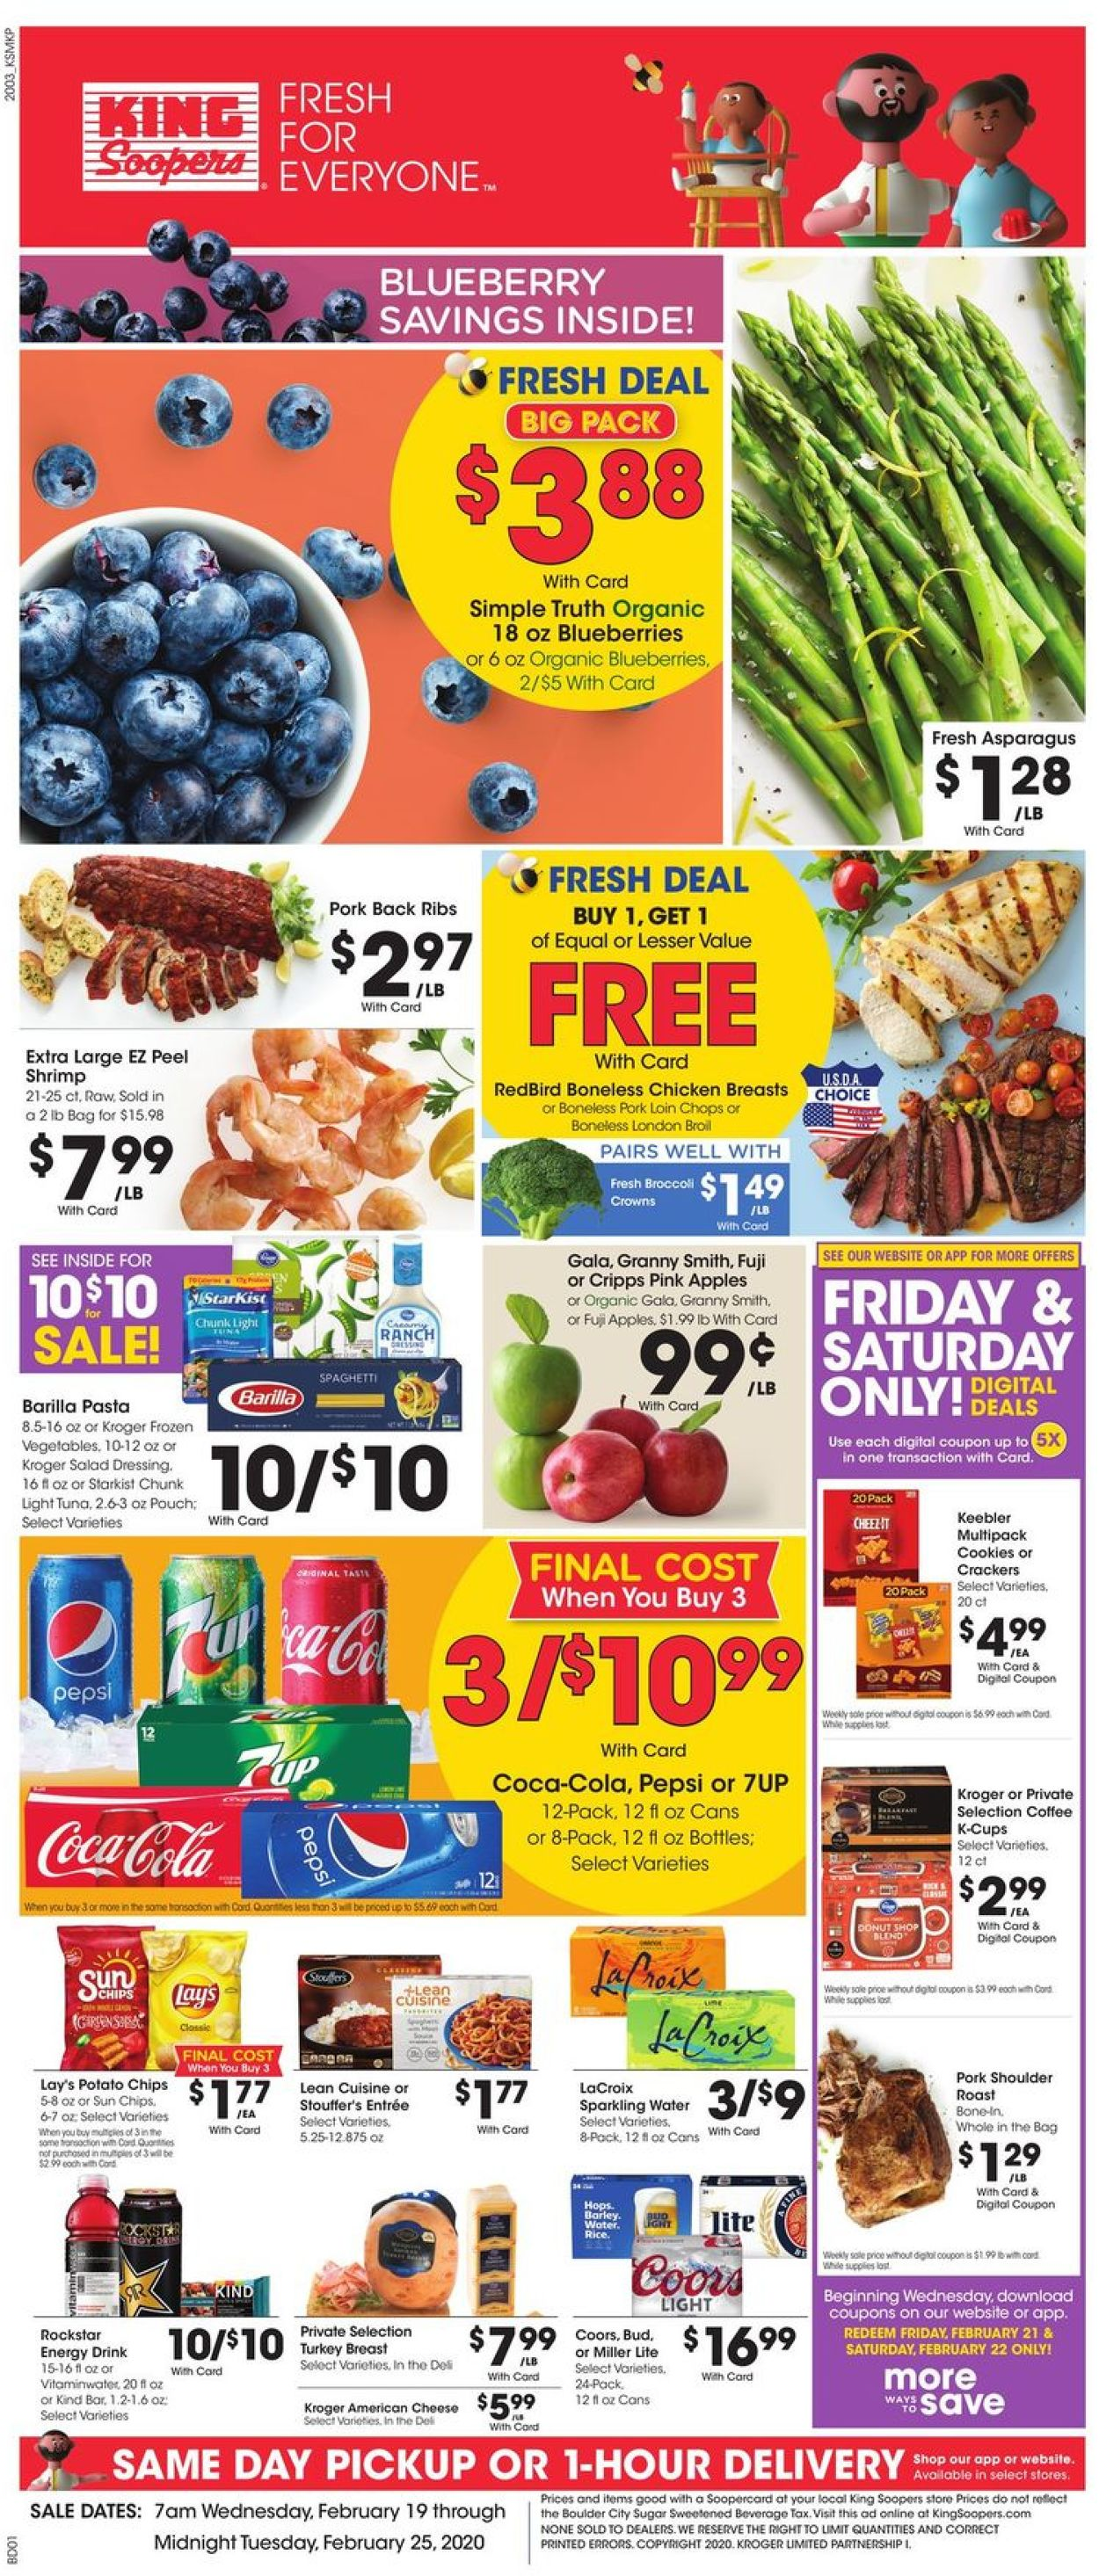 King Soopers Weekly Ad Circular - valid 02/19-02/25/2020